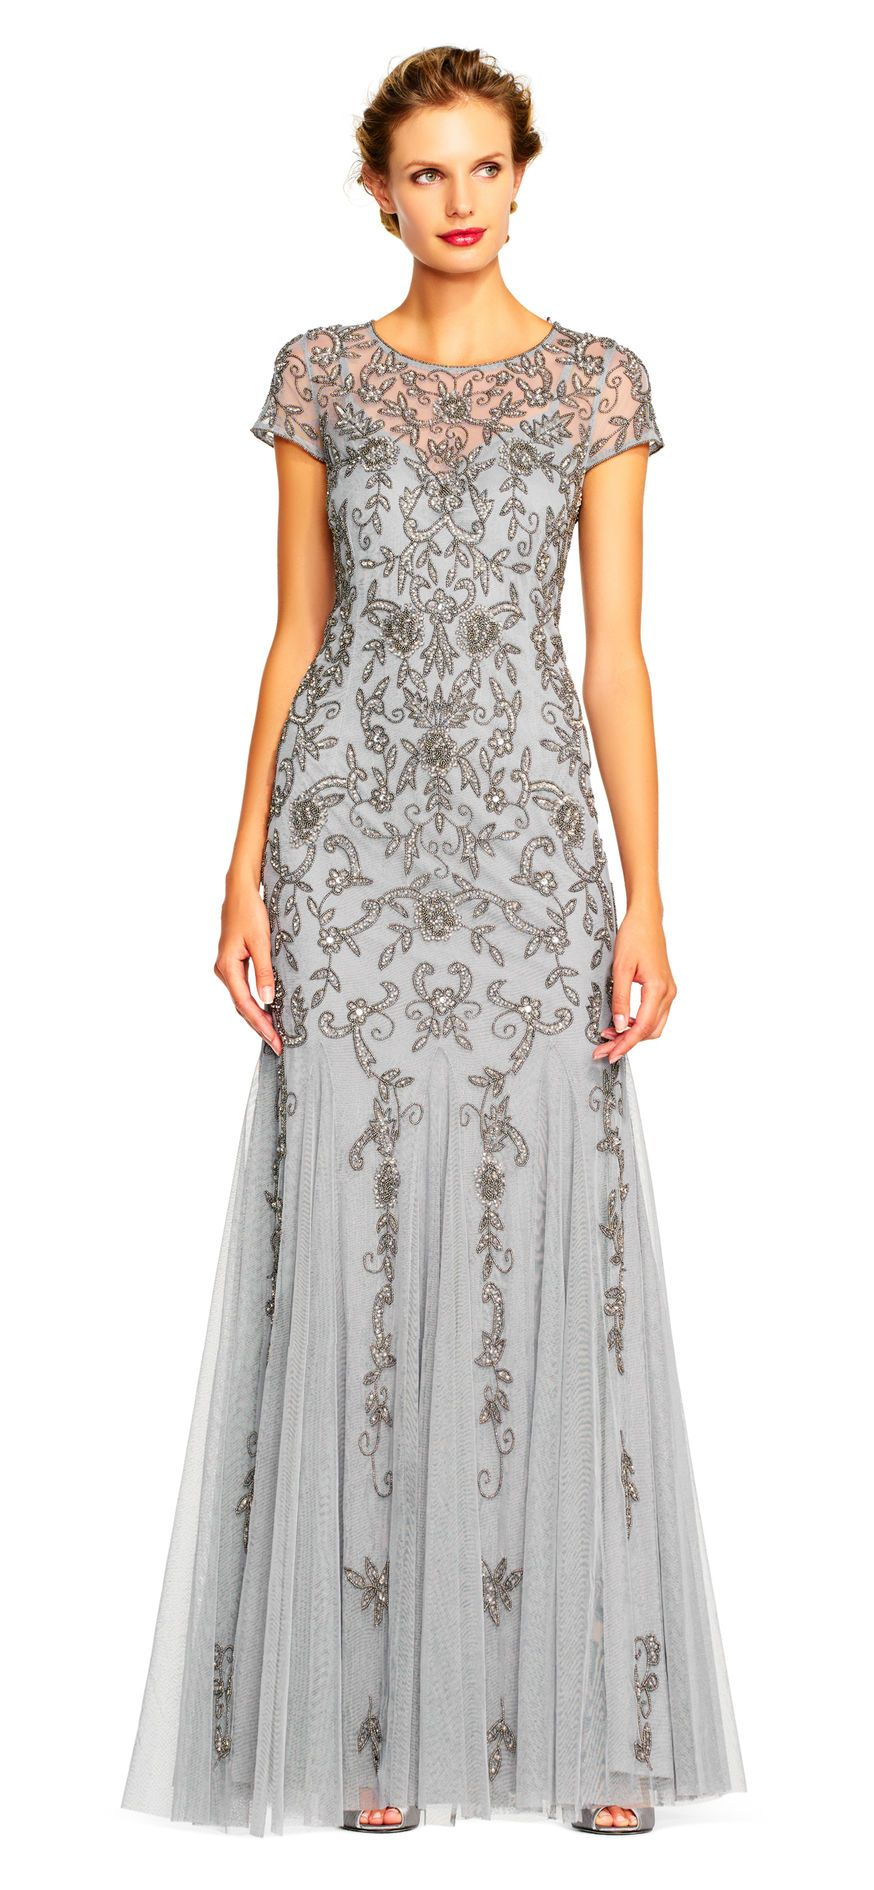 968e929664 Adrianna Papell | Illusion Short Sleeve Beaded Gown with Godet Skirt and  Keyhole Back